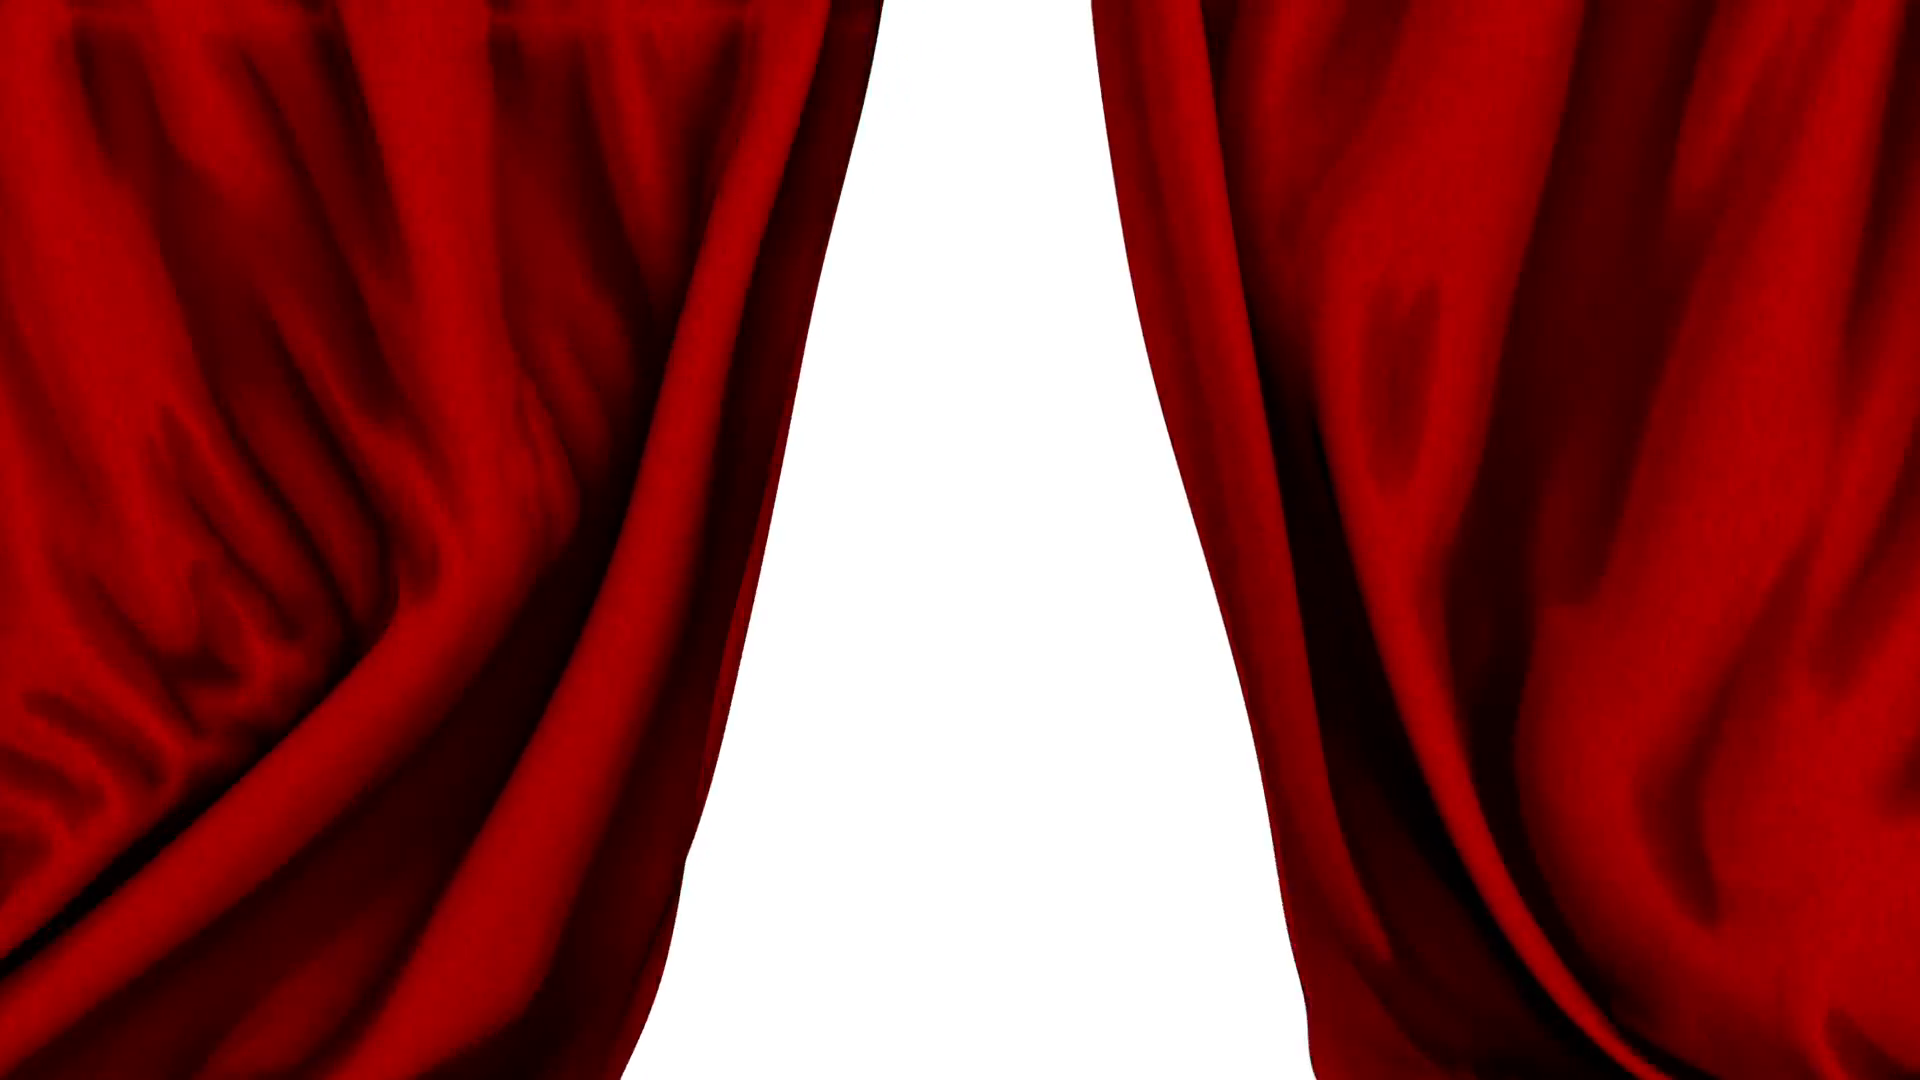 Red Show Curtains Close & Open Slow Transition Motion Background ...